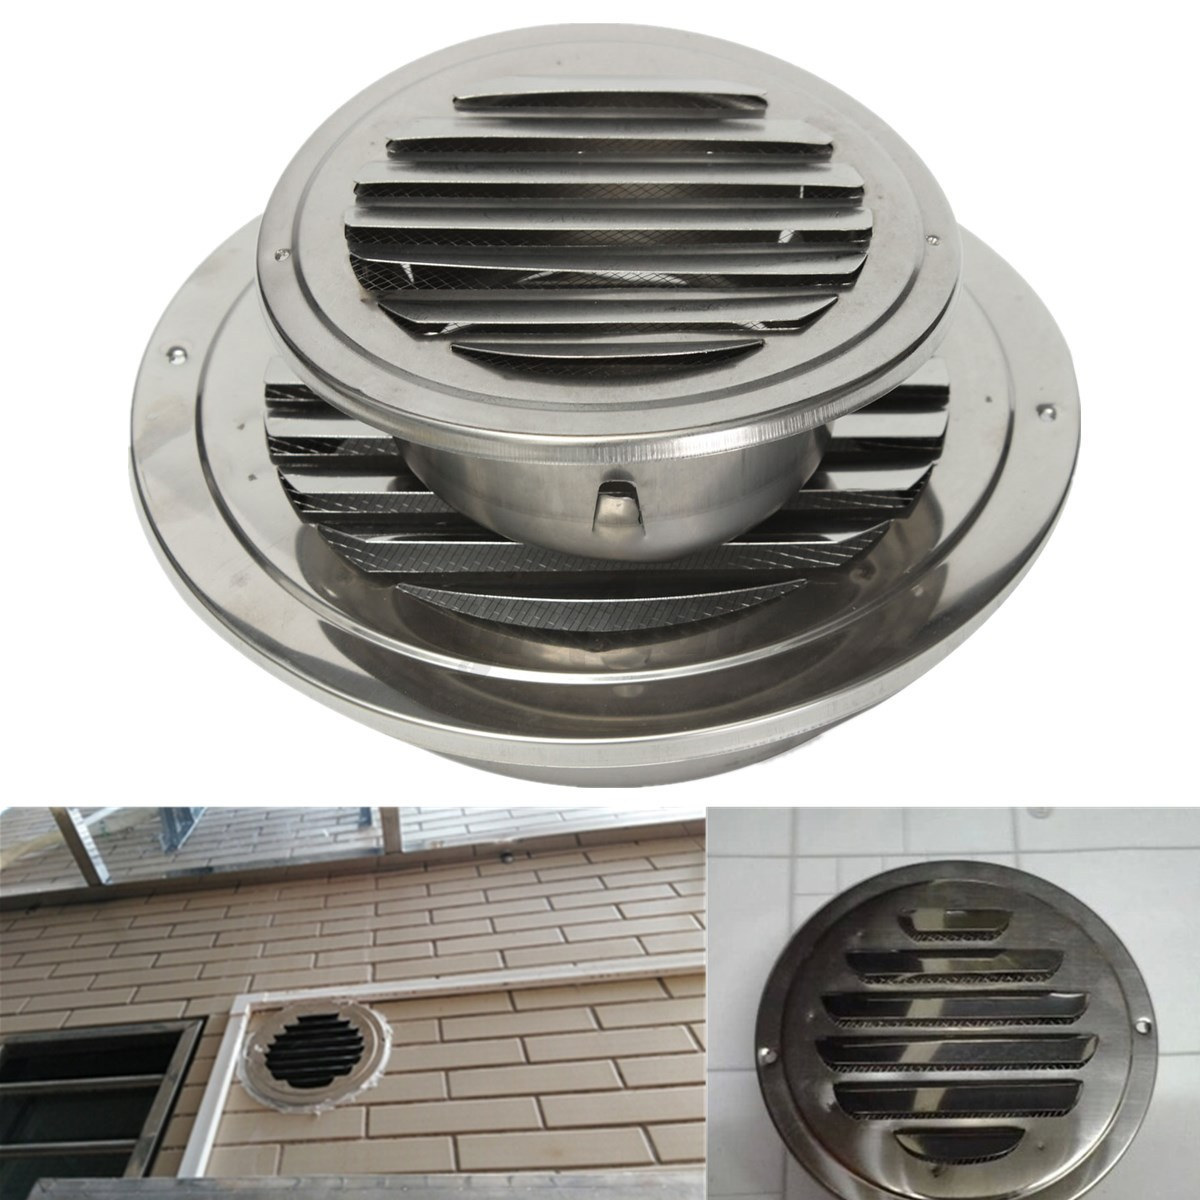 Stainless Silver Circular Air Vent Scoop Grille Cover Wall